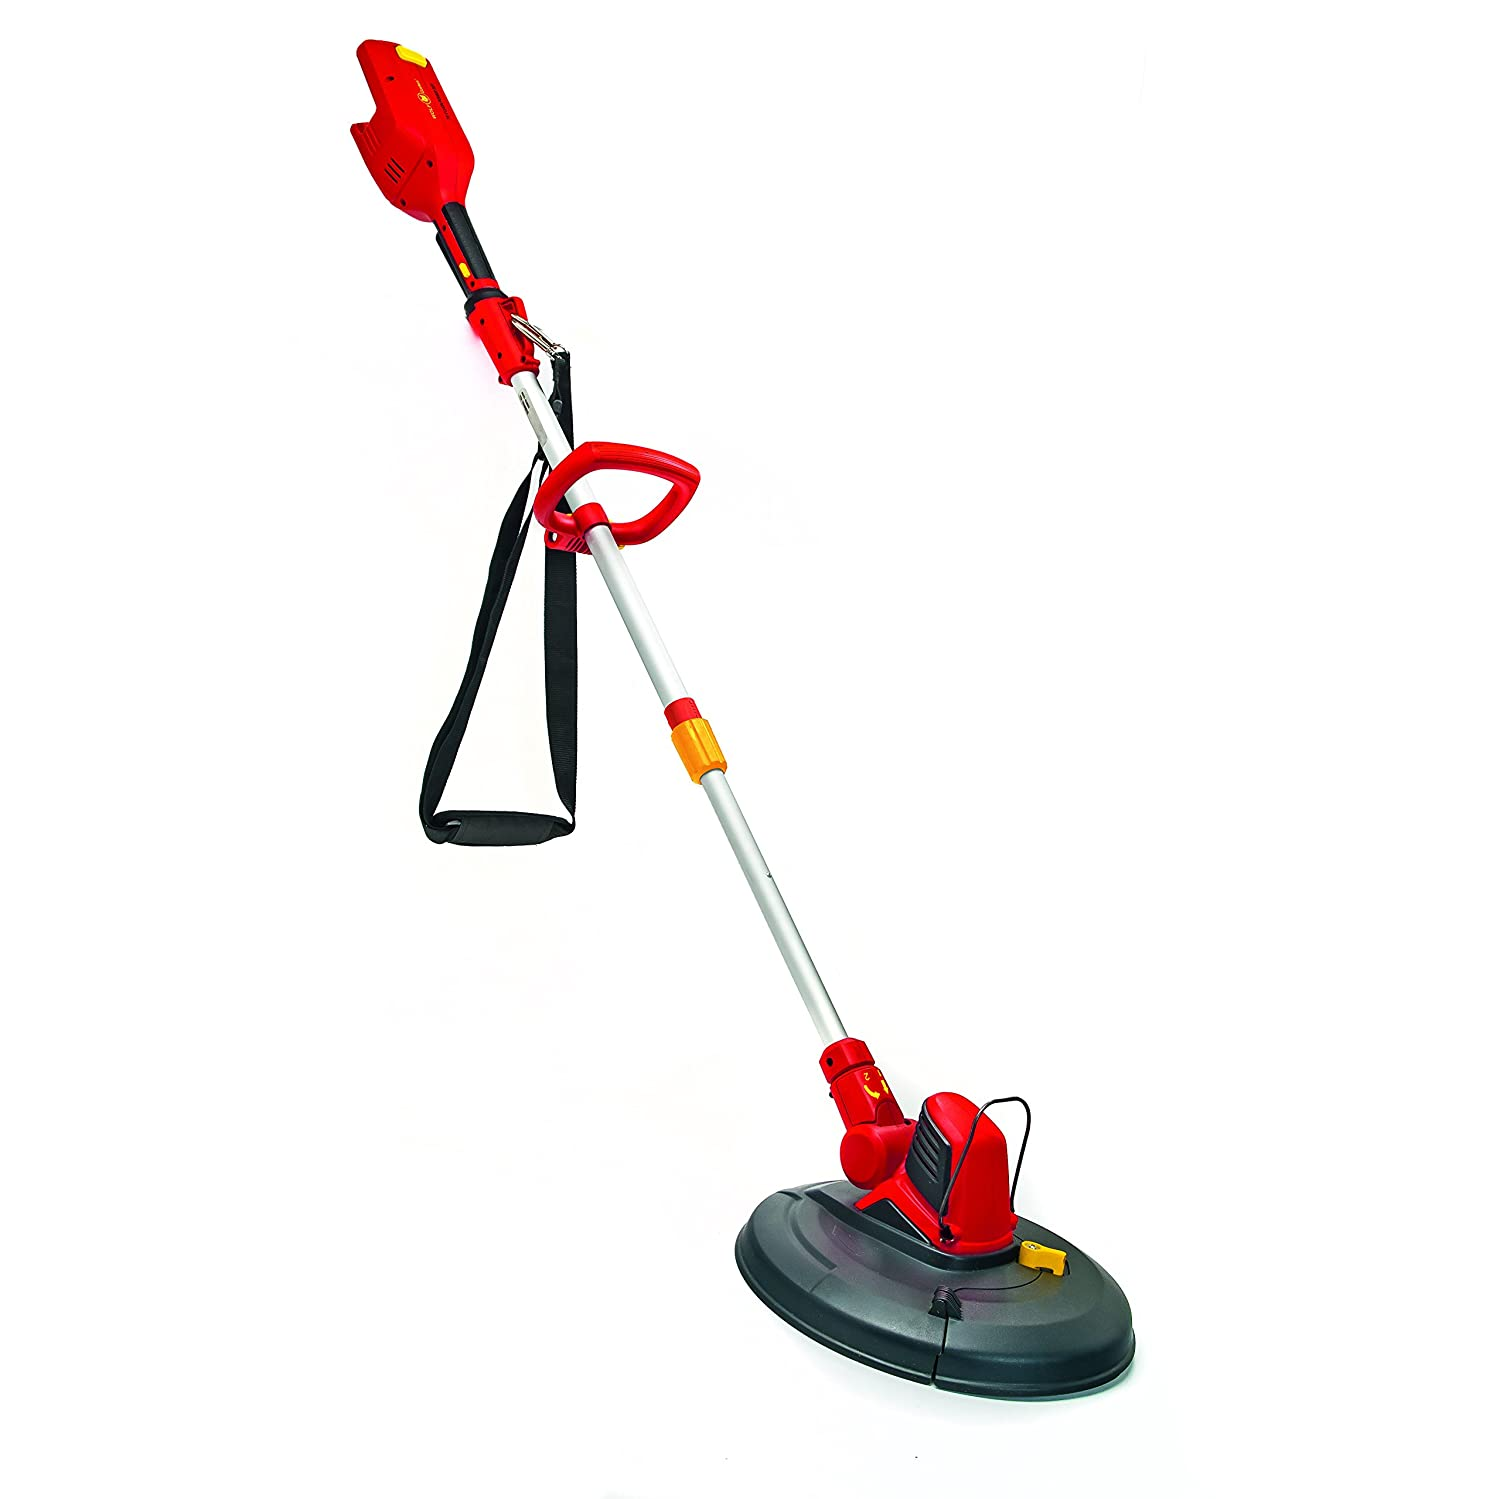 Wolf-Garten LIONPOWER30T 72 V Li-On Battery Grass Trimmer without Battery New - Red/Yellow Wolf Garten